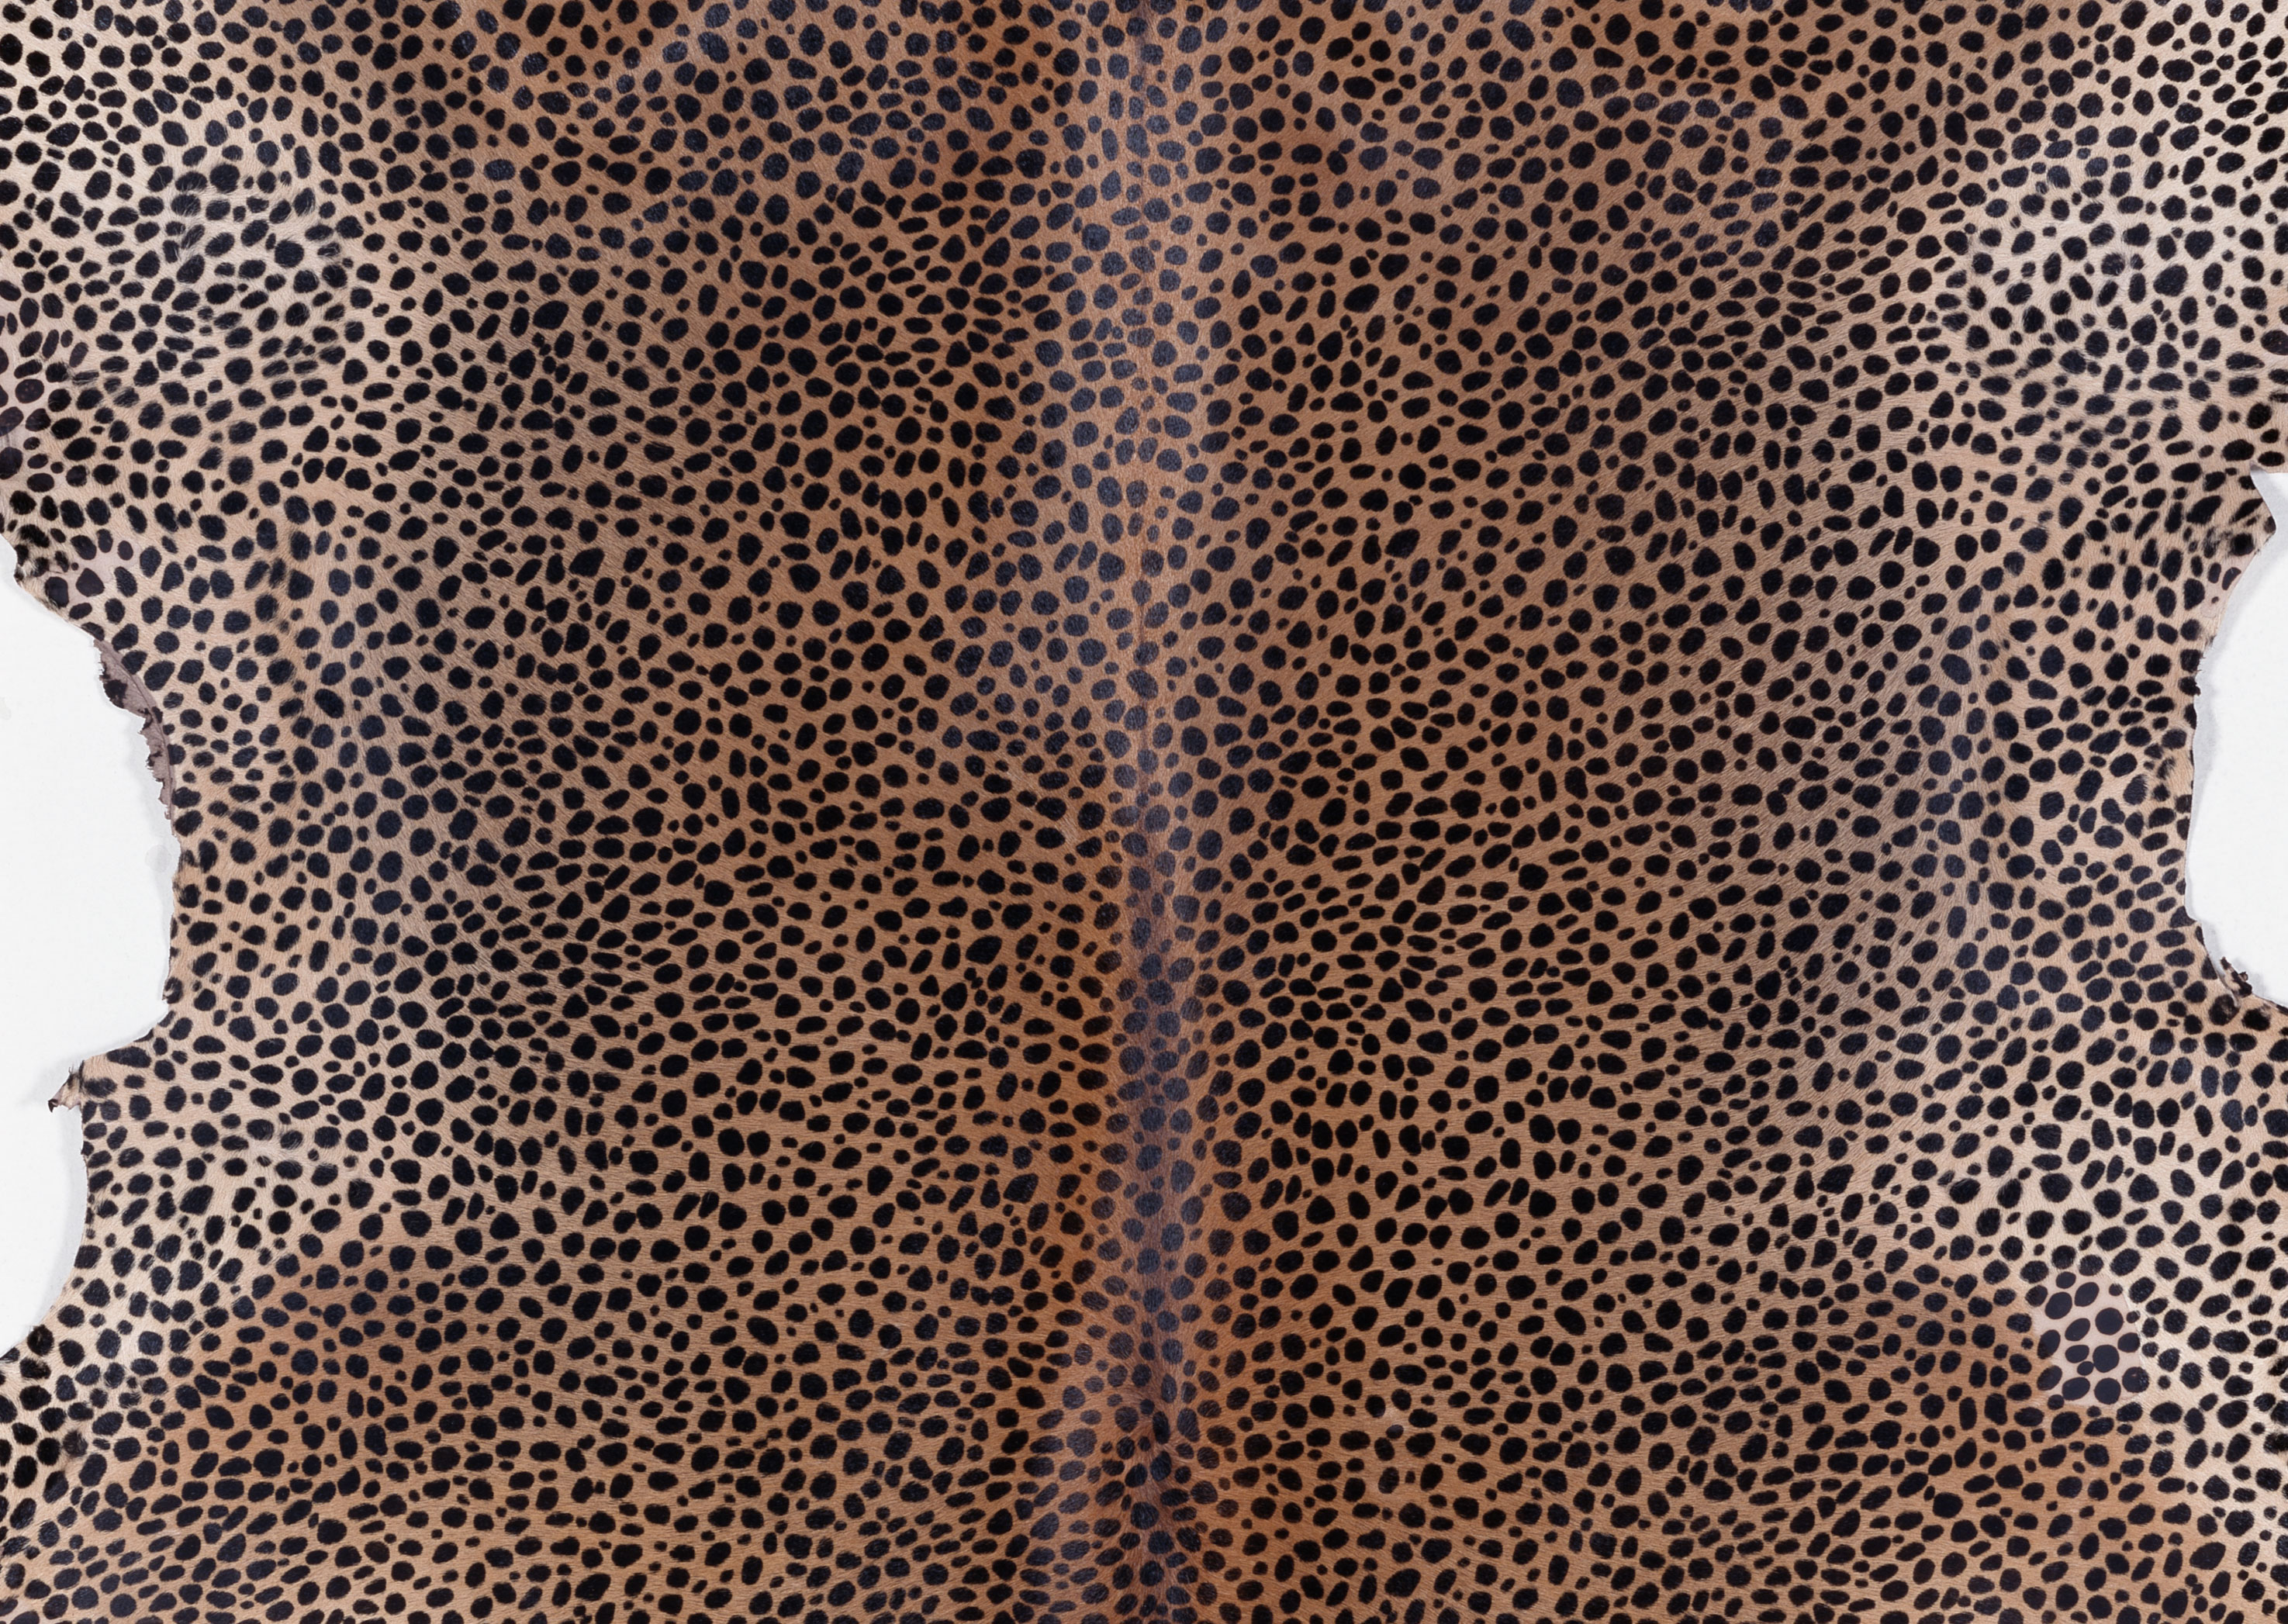 animal texture, background, skin animal texture, background